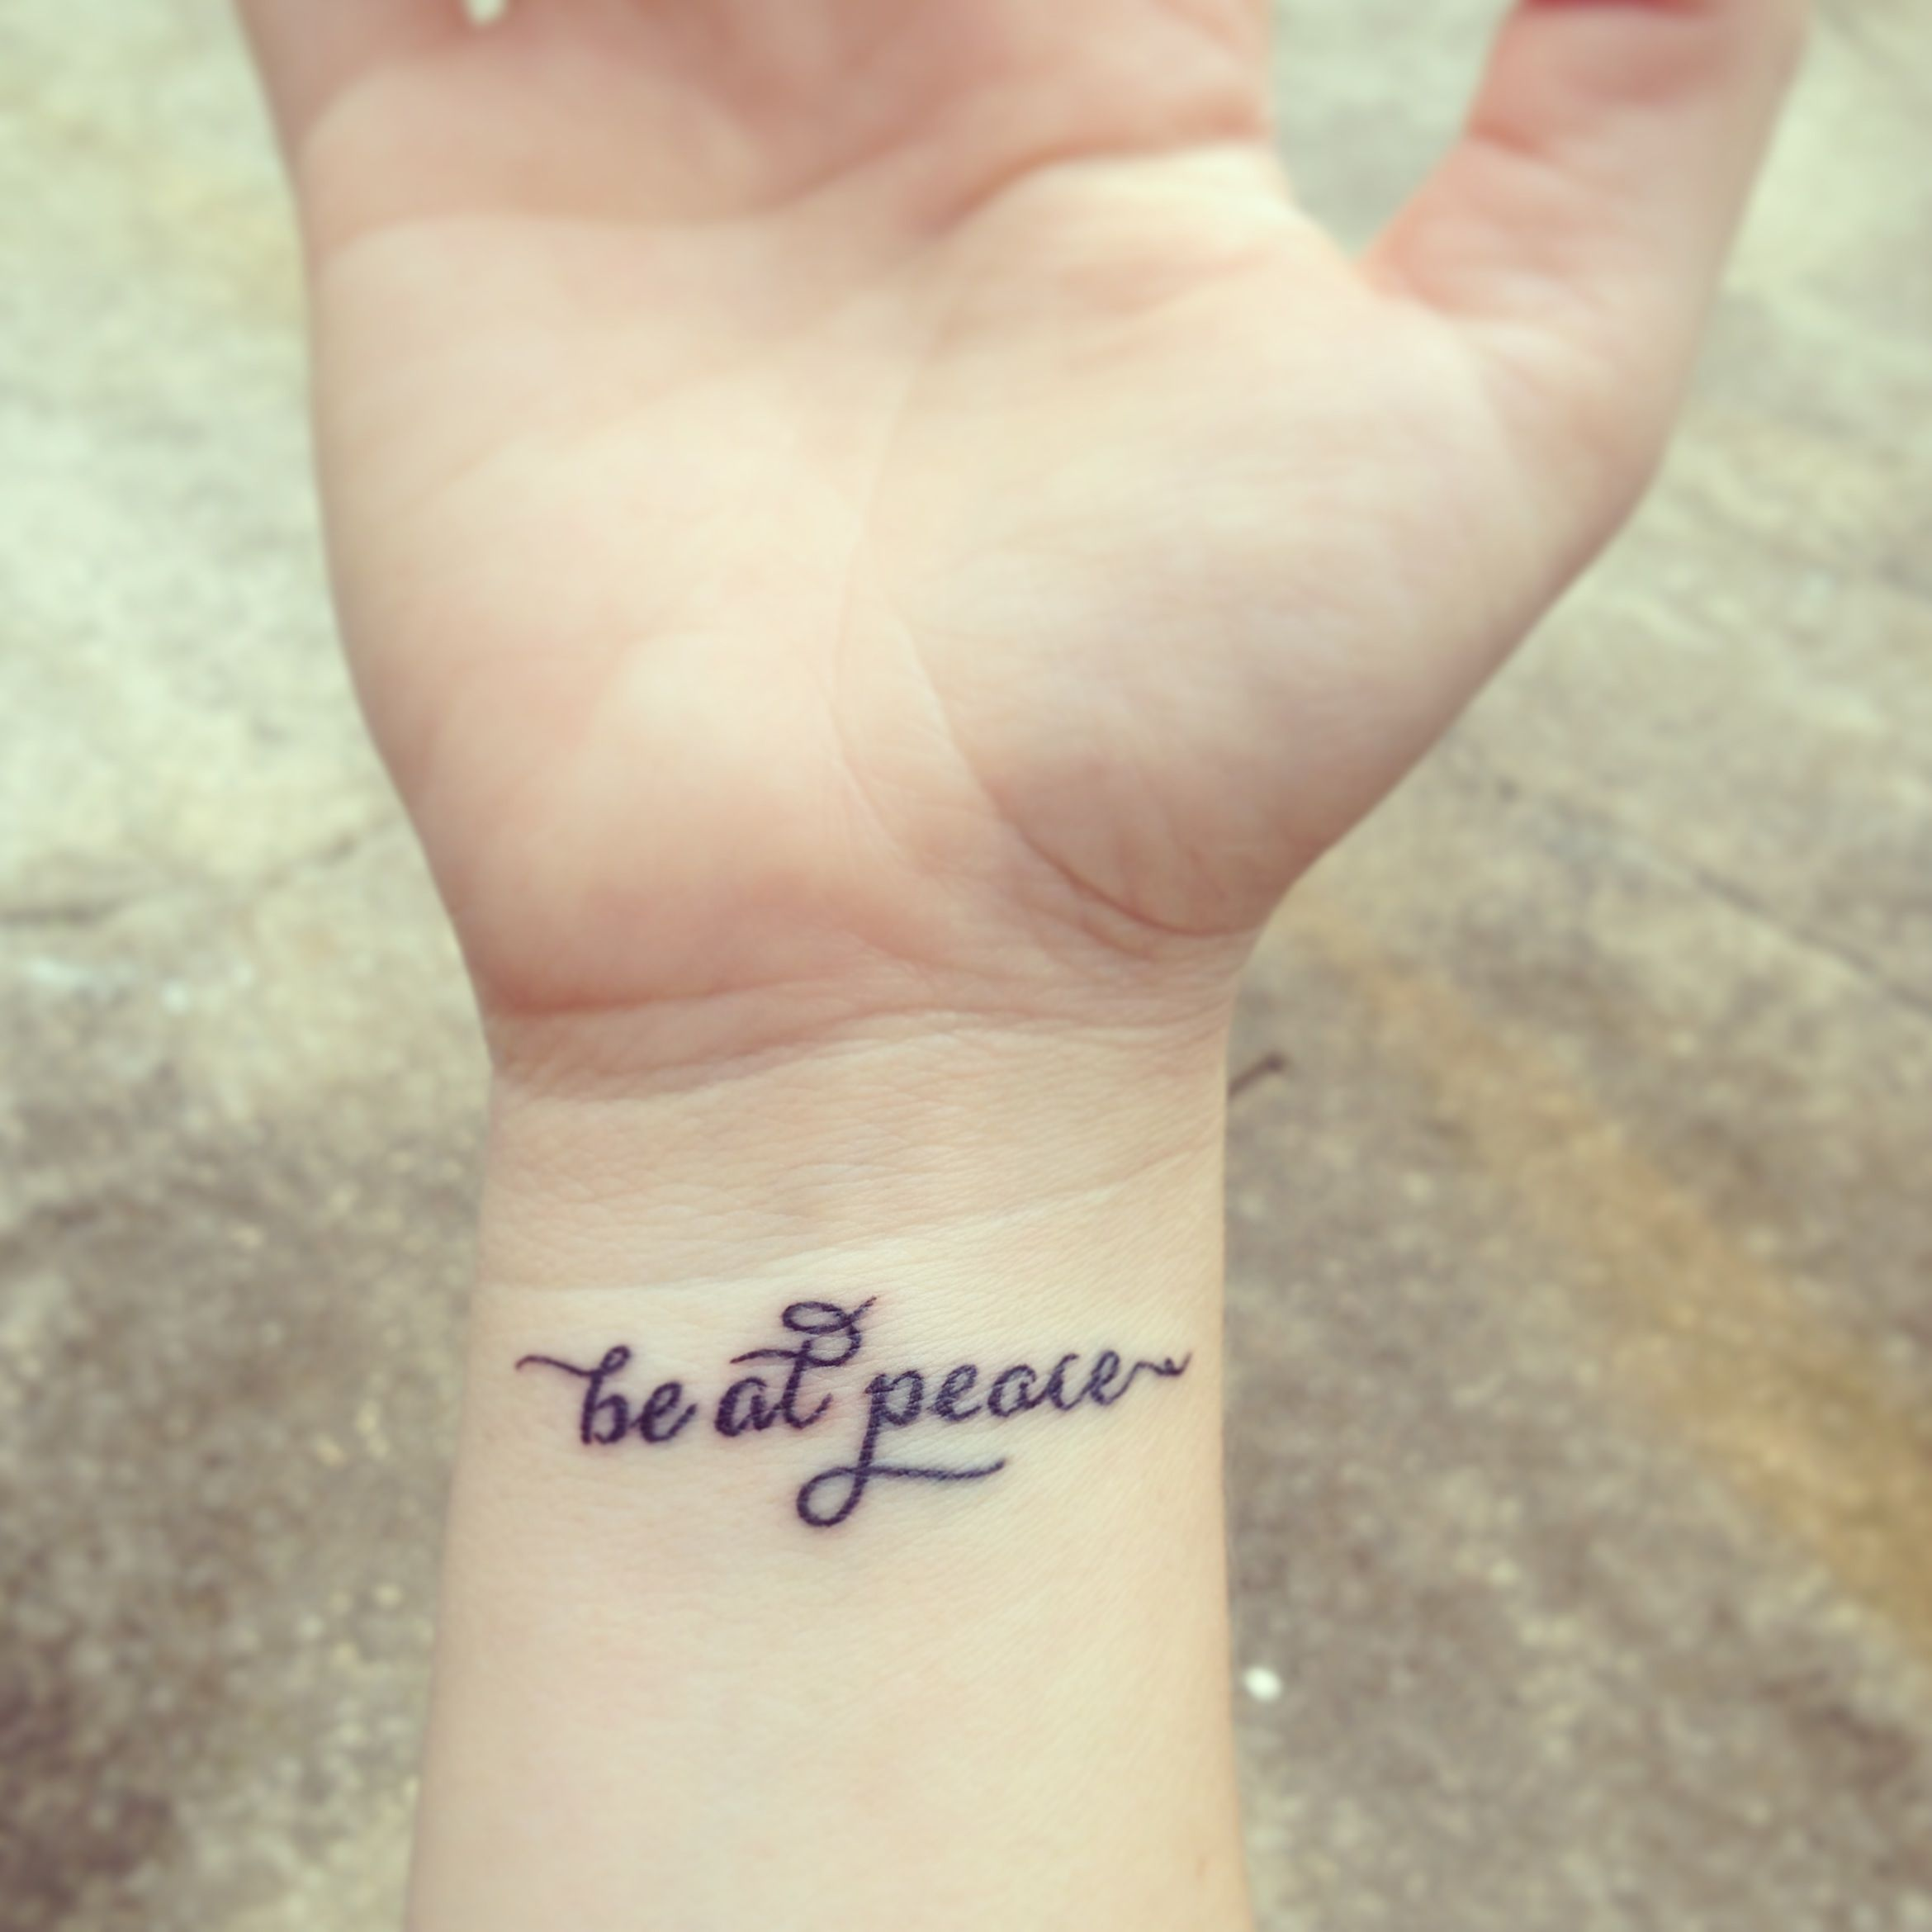 Tattoo ideas for the wrist - Dainty Lettered Wrist Tattoo Favorite Prayer